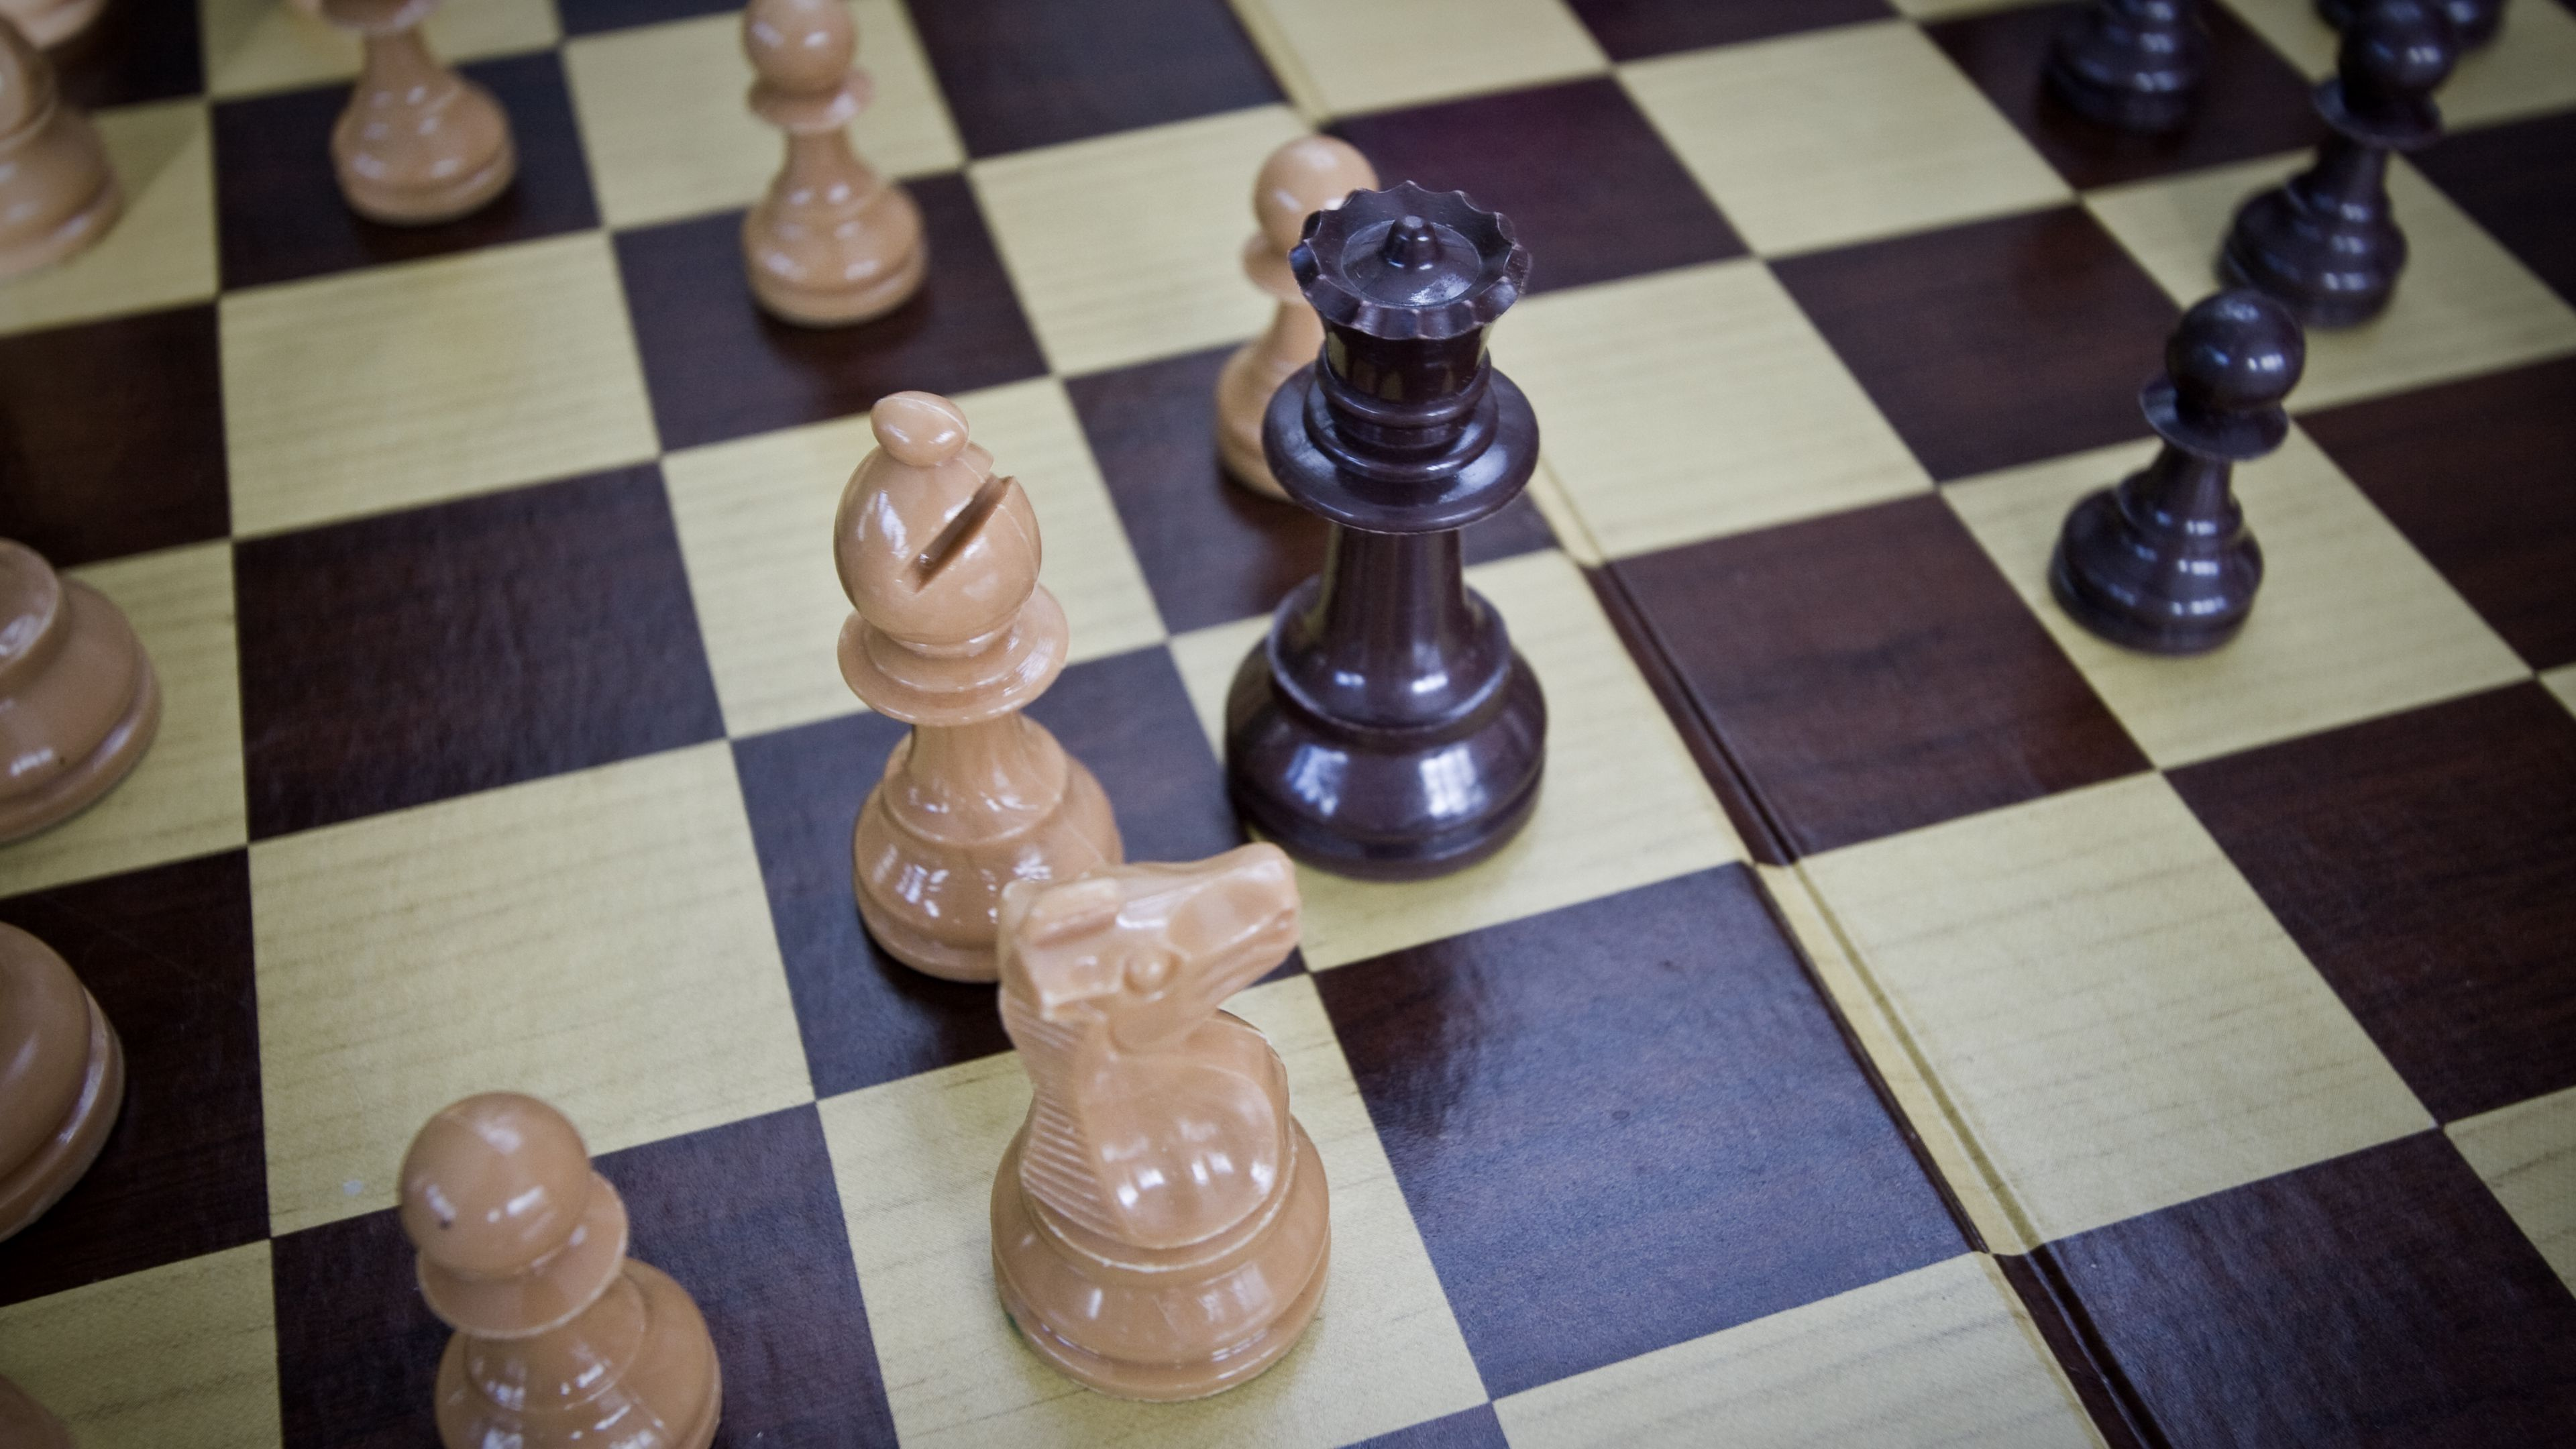 3840x2160 Wallpaper chess, game, board, pieces